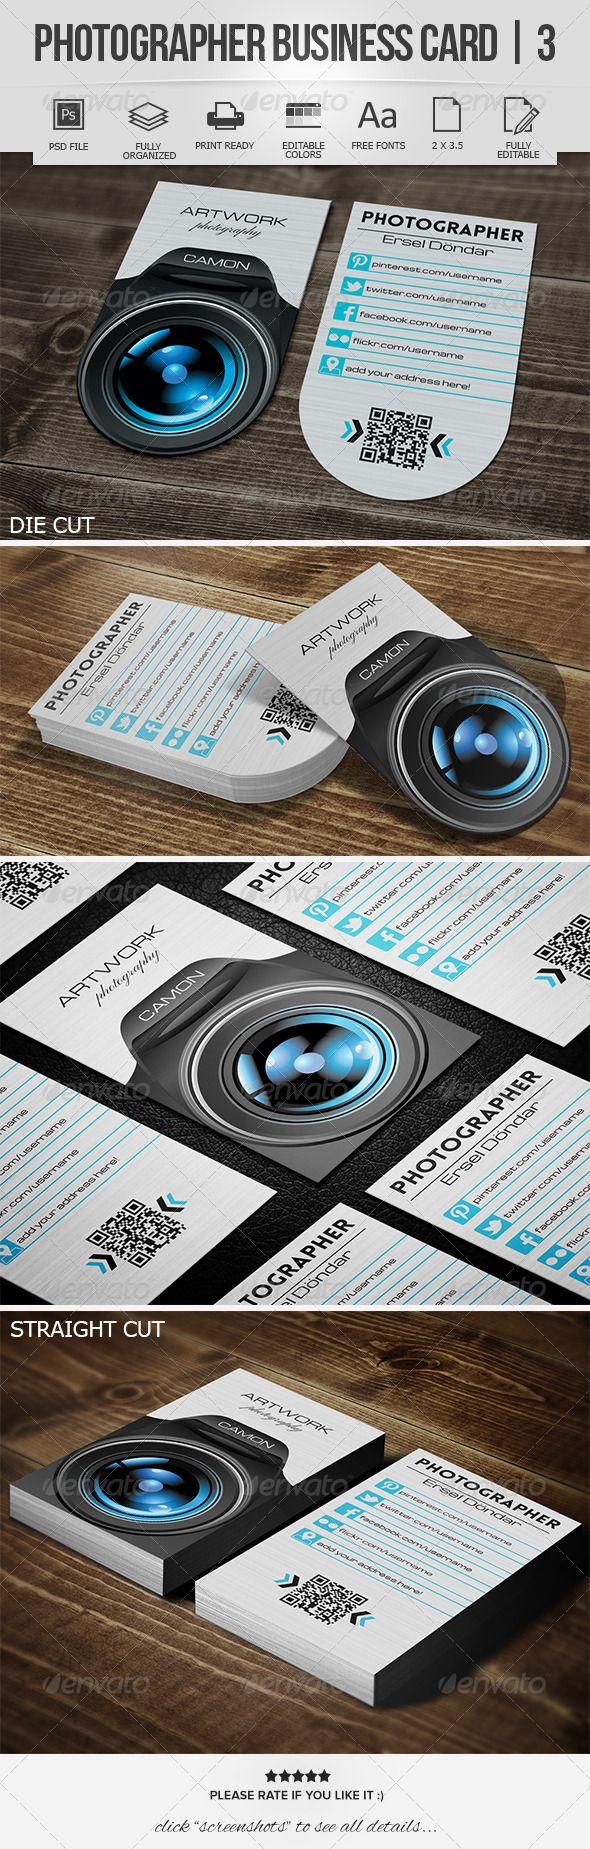 Photographer Business Card | 3 - Industry Specific Business Cards